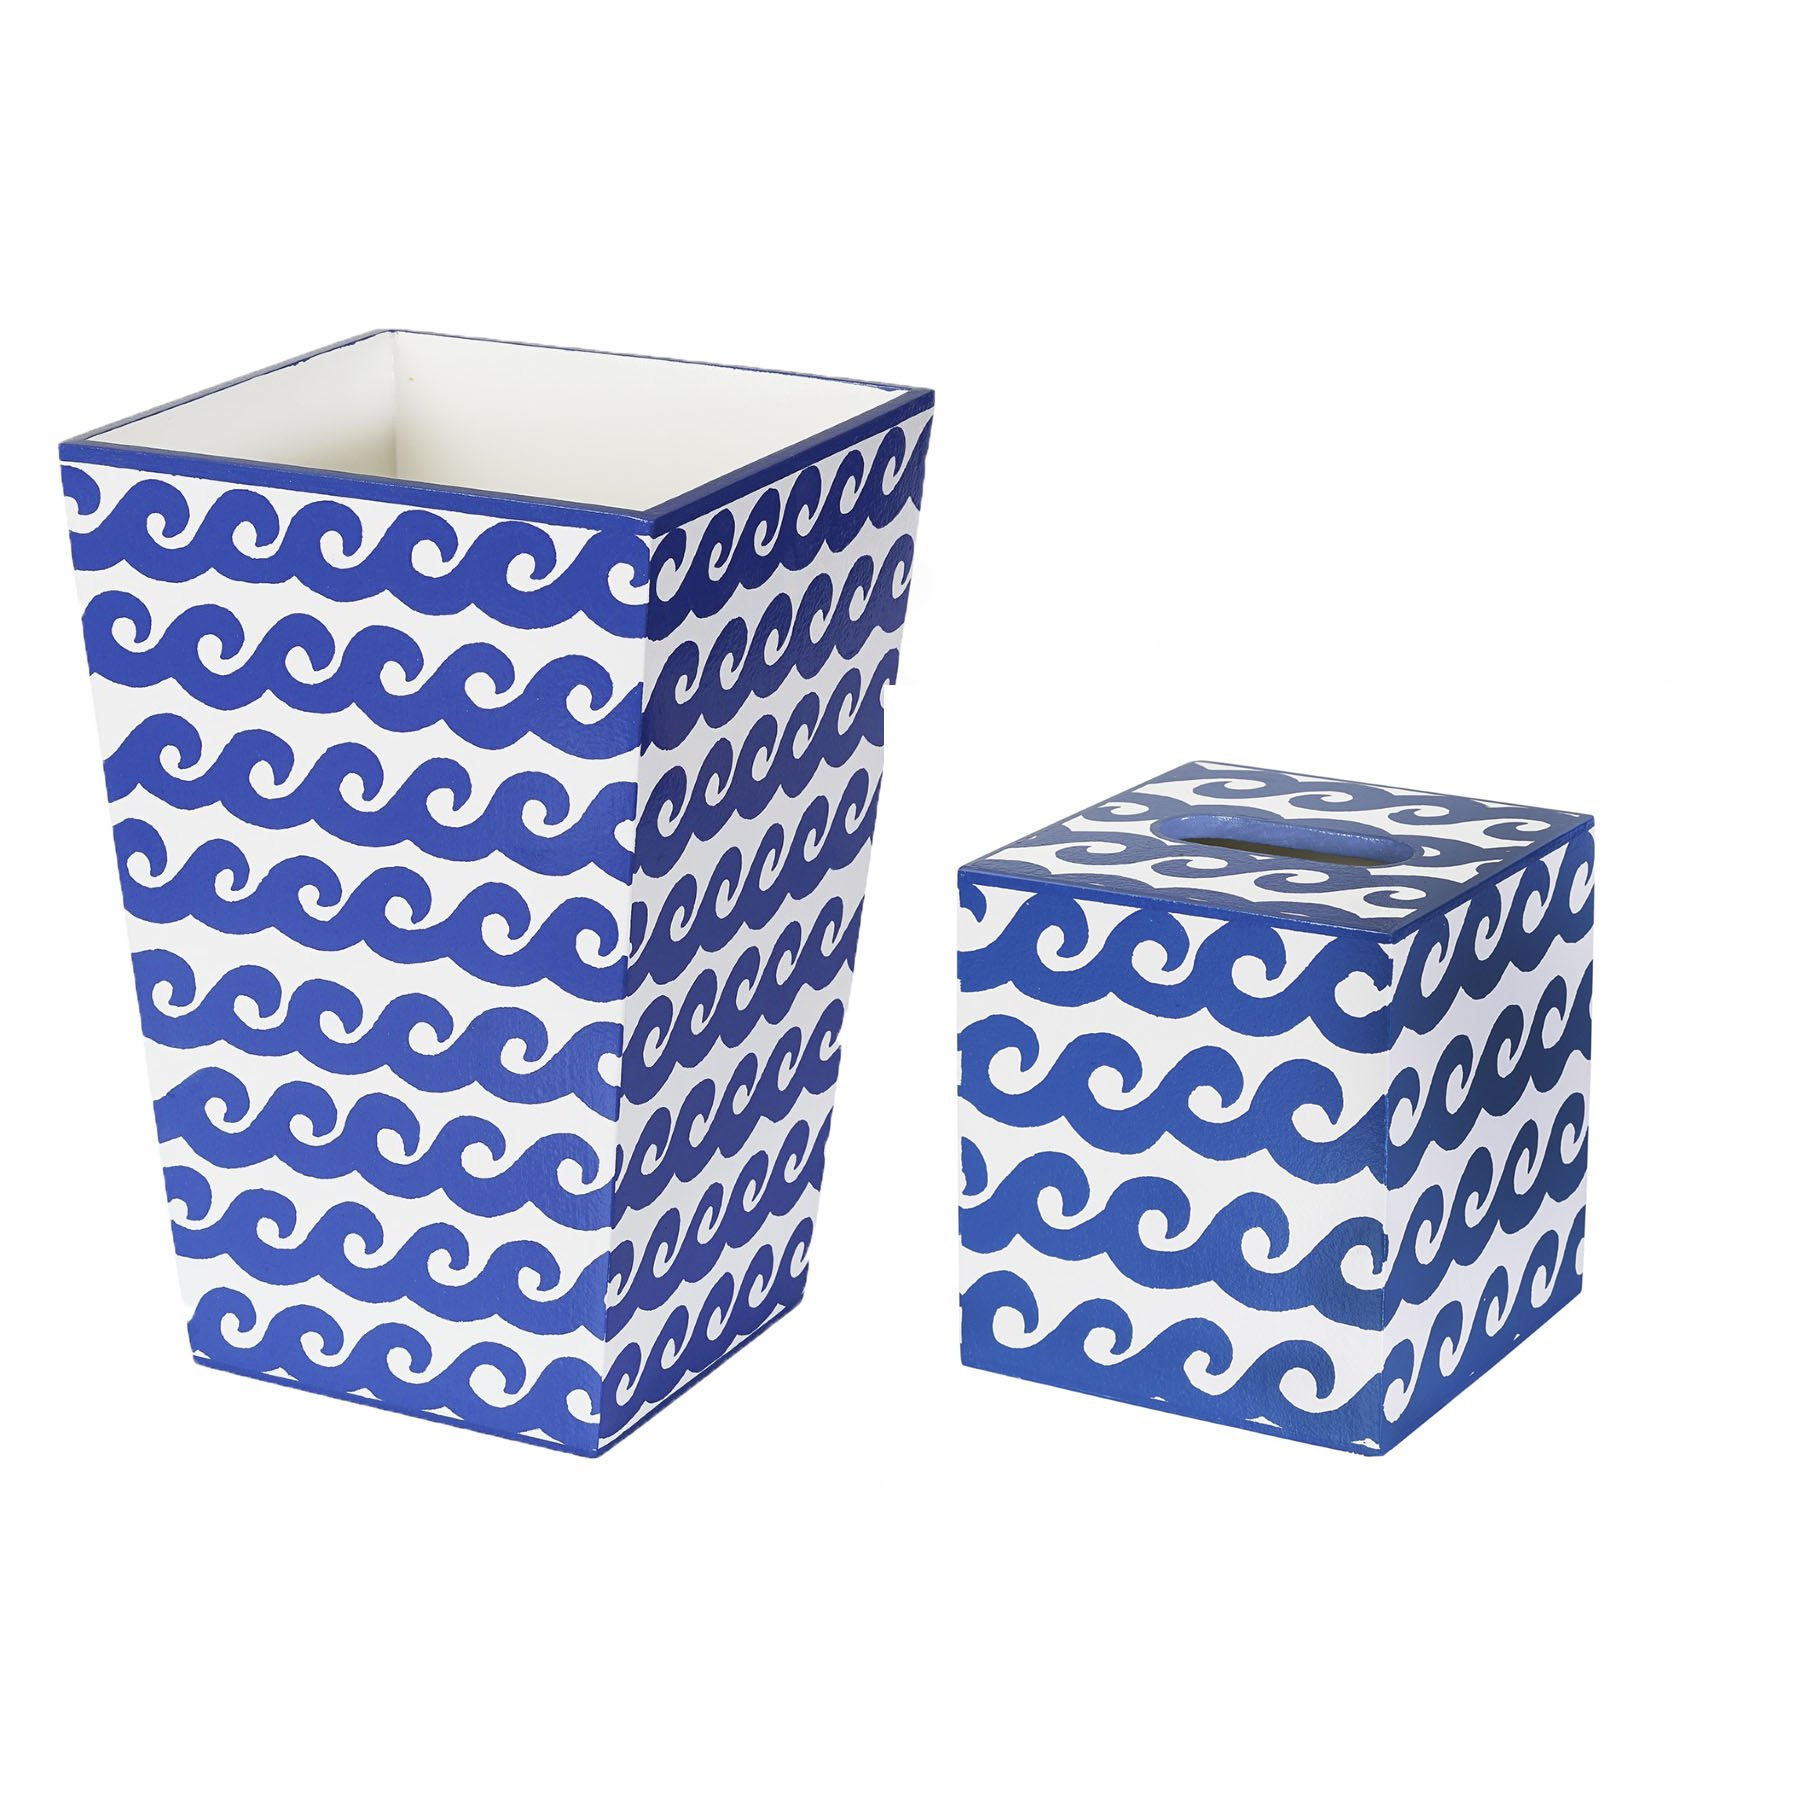 Trash Can Trash Bin Wastebasket & Tissue Box Cover Bathroom Sets Wave Design